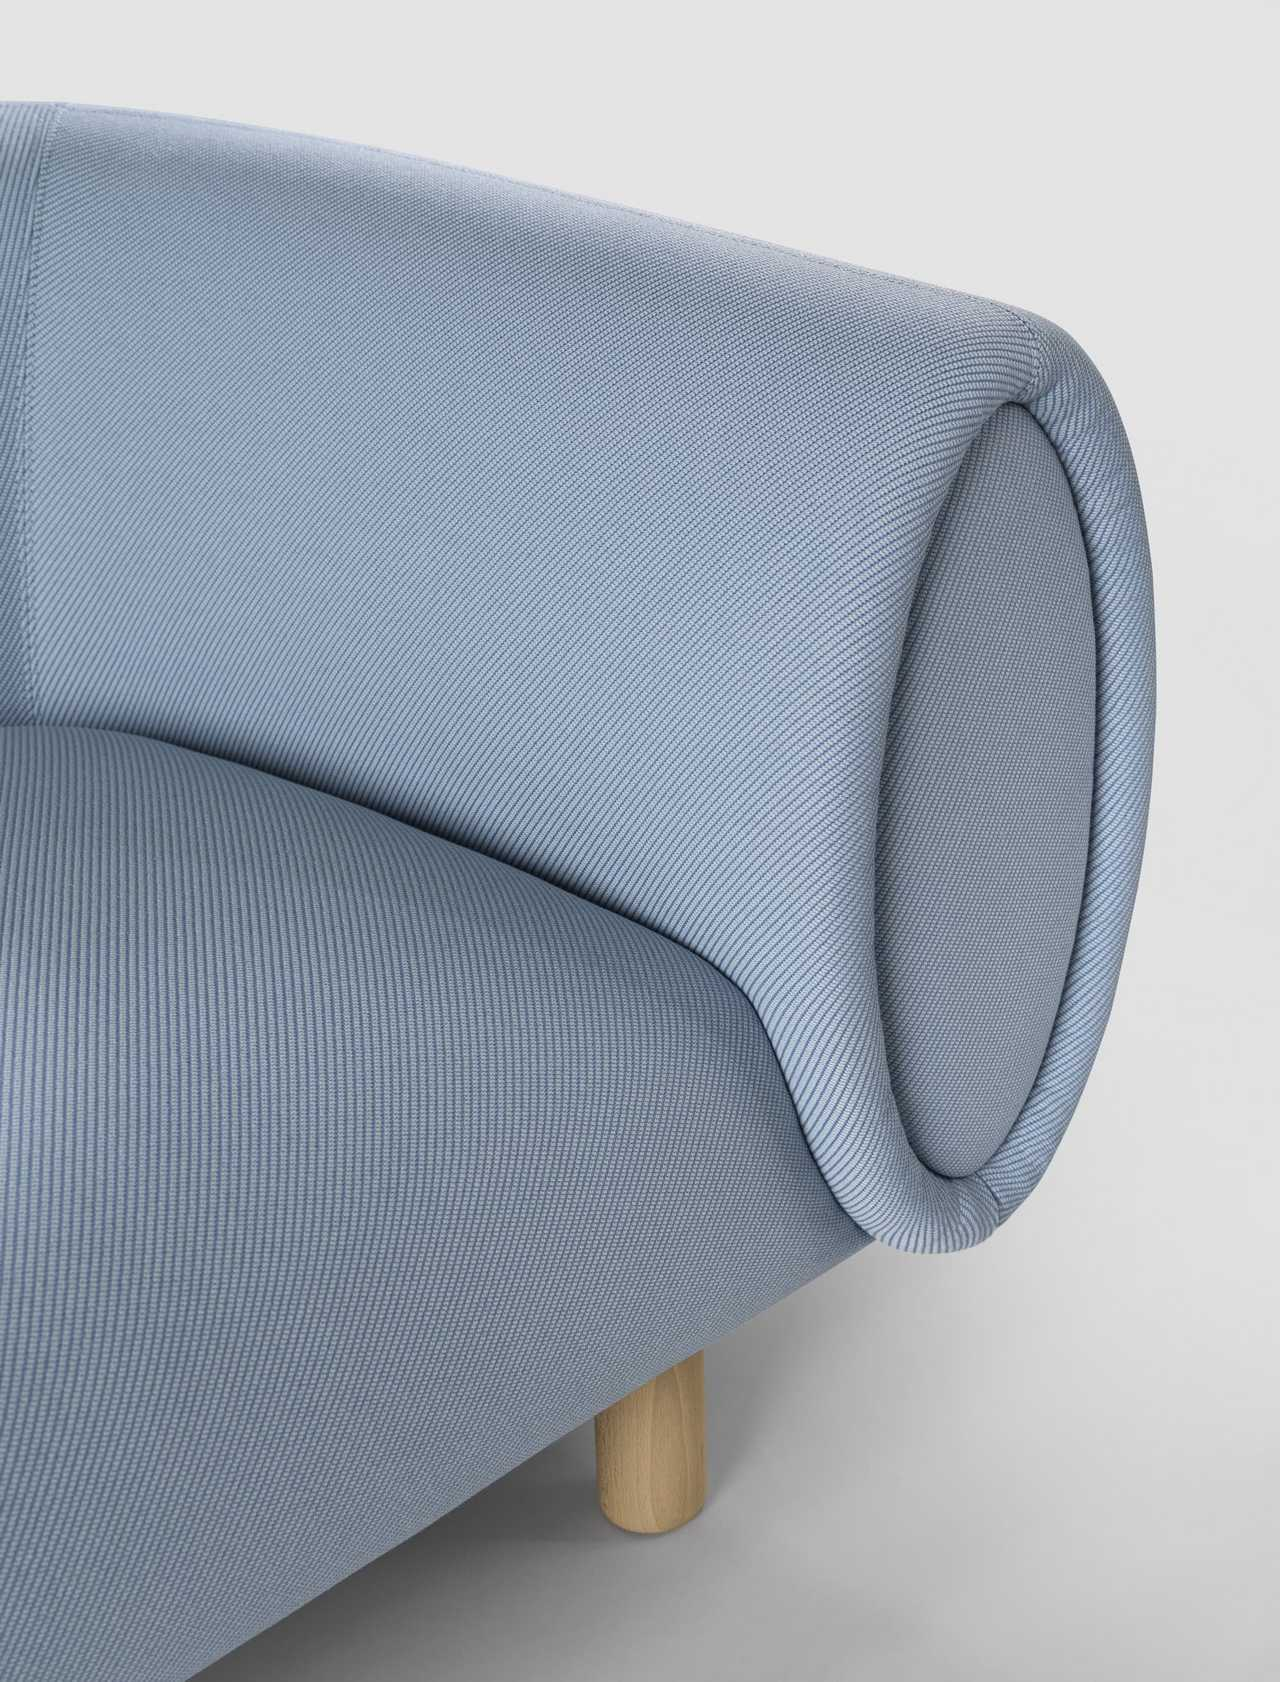 Tobi is a curvy sofa design by Rexite that portrays Timeless Elegance